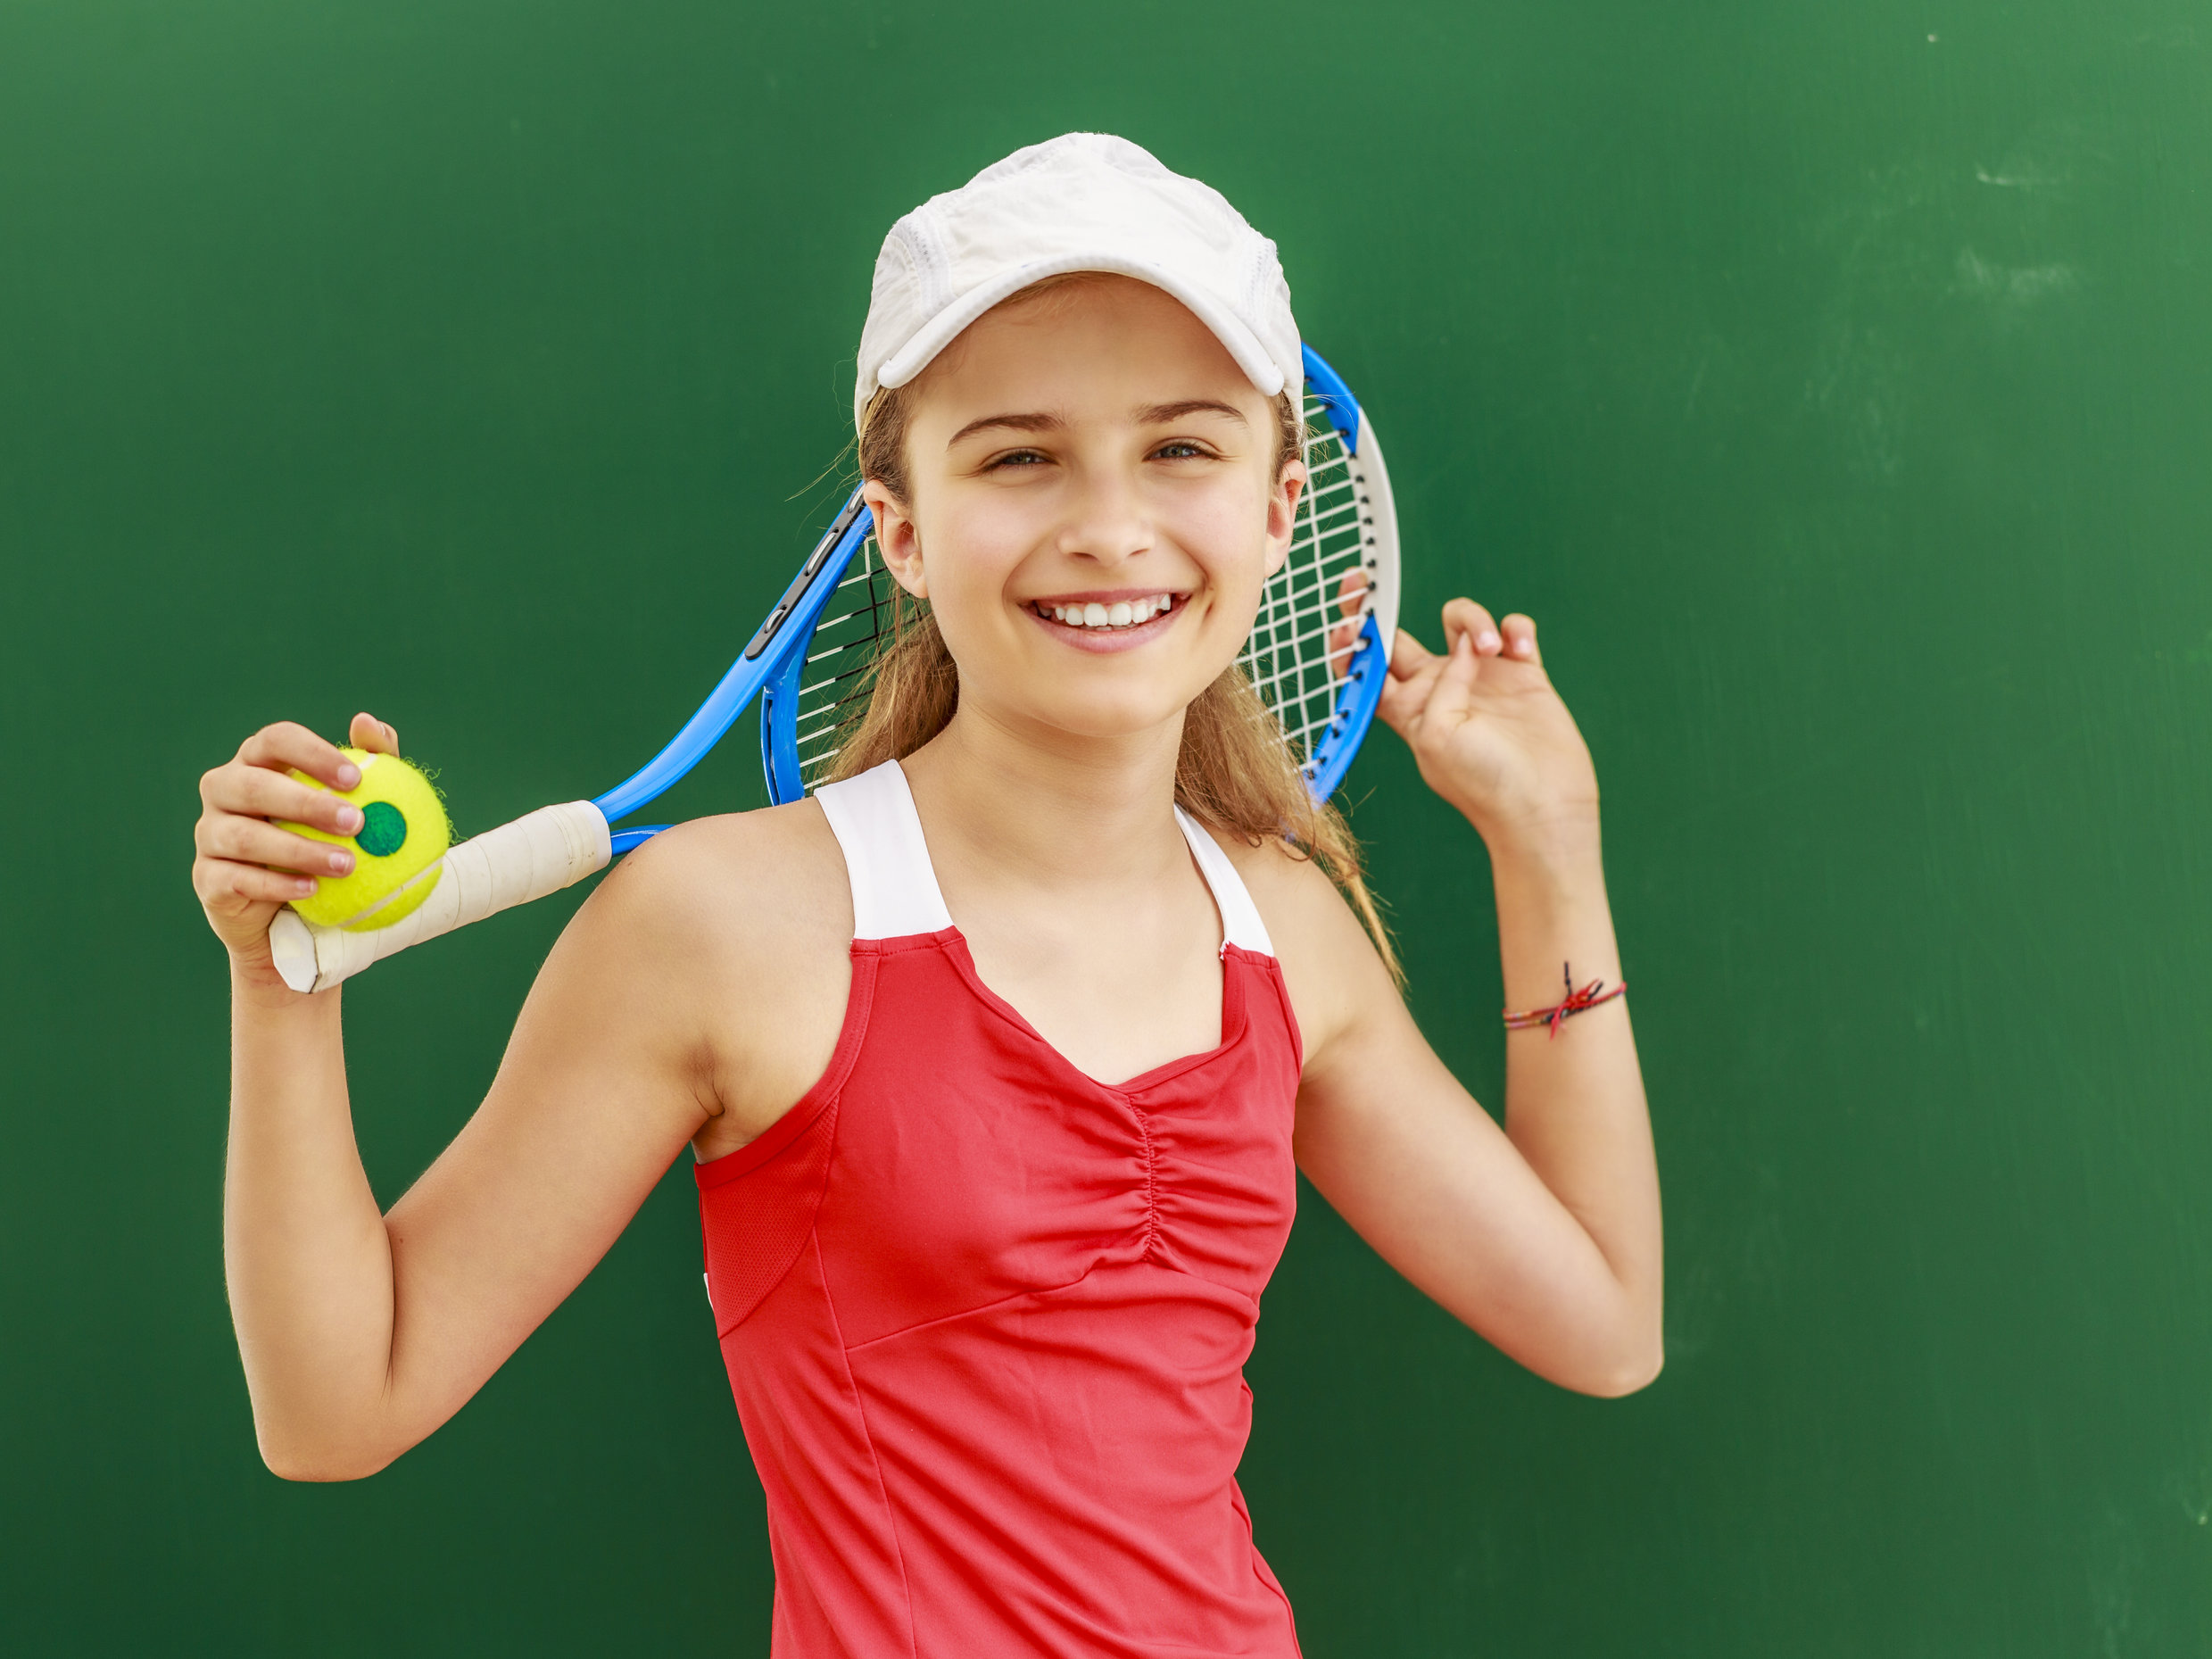 Kids_Tennis_Smile